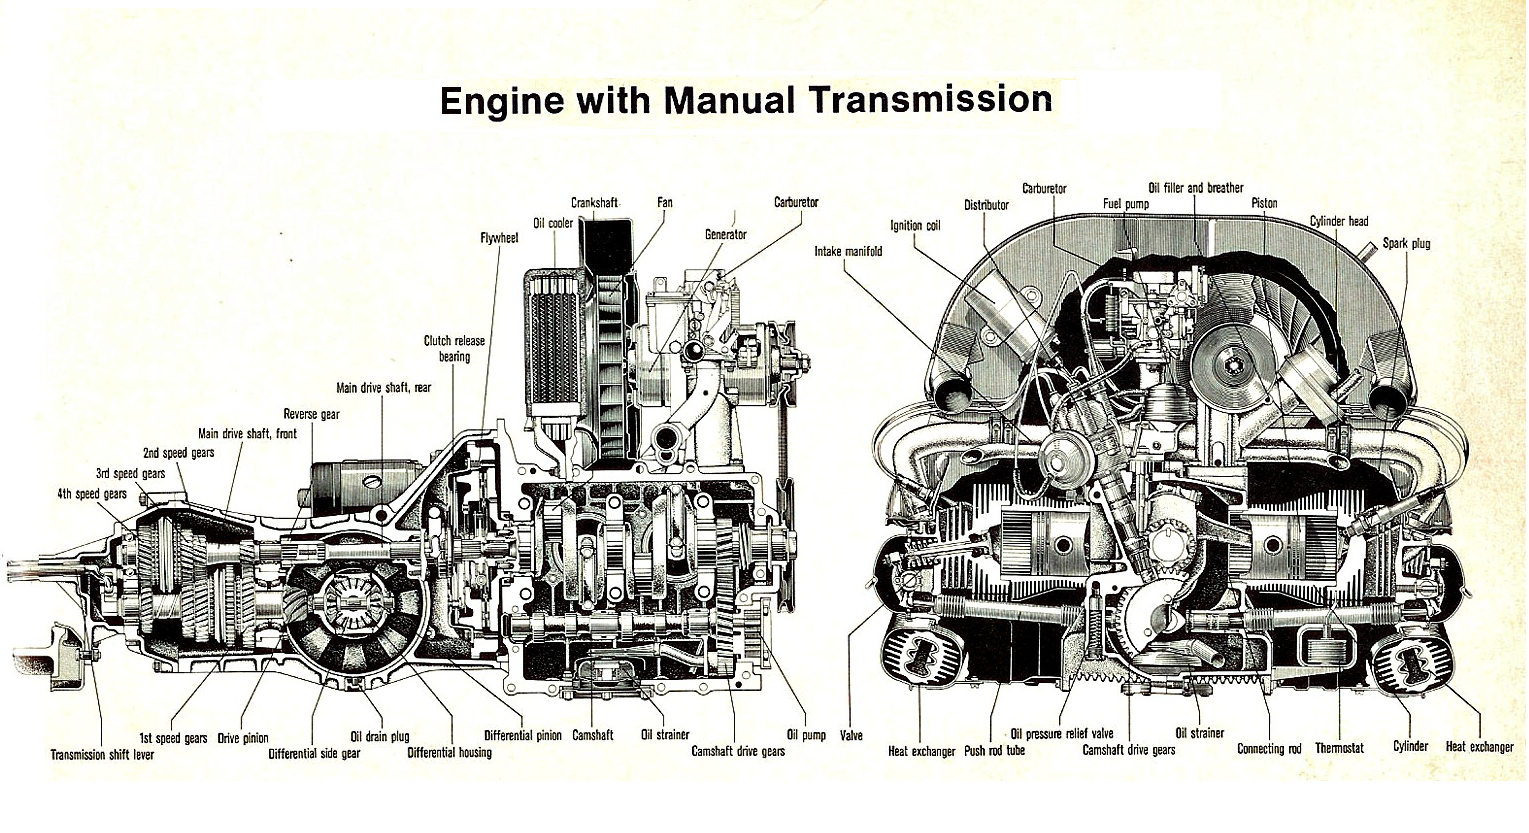 Vw 1 4 Engine Diagram Great Design Of Wiring 1999 Volkswagen Jetta 1600 8 1600cc 1967